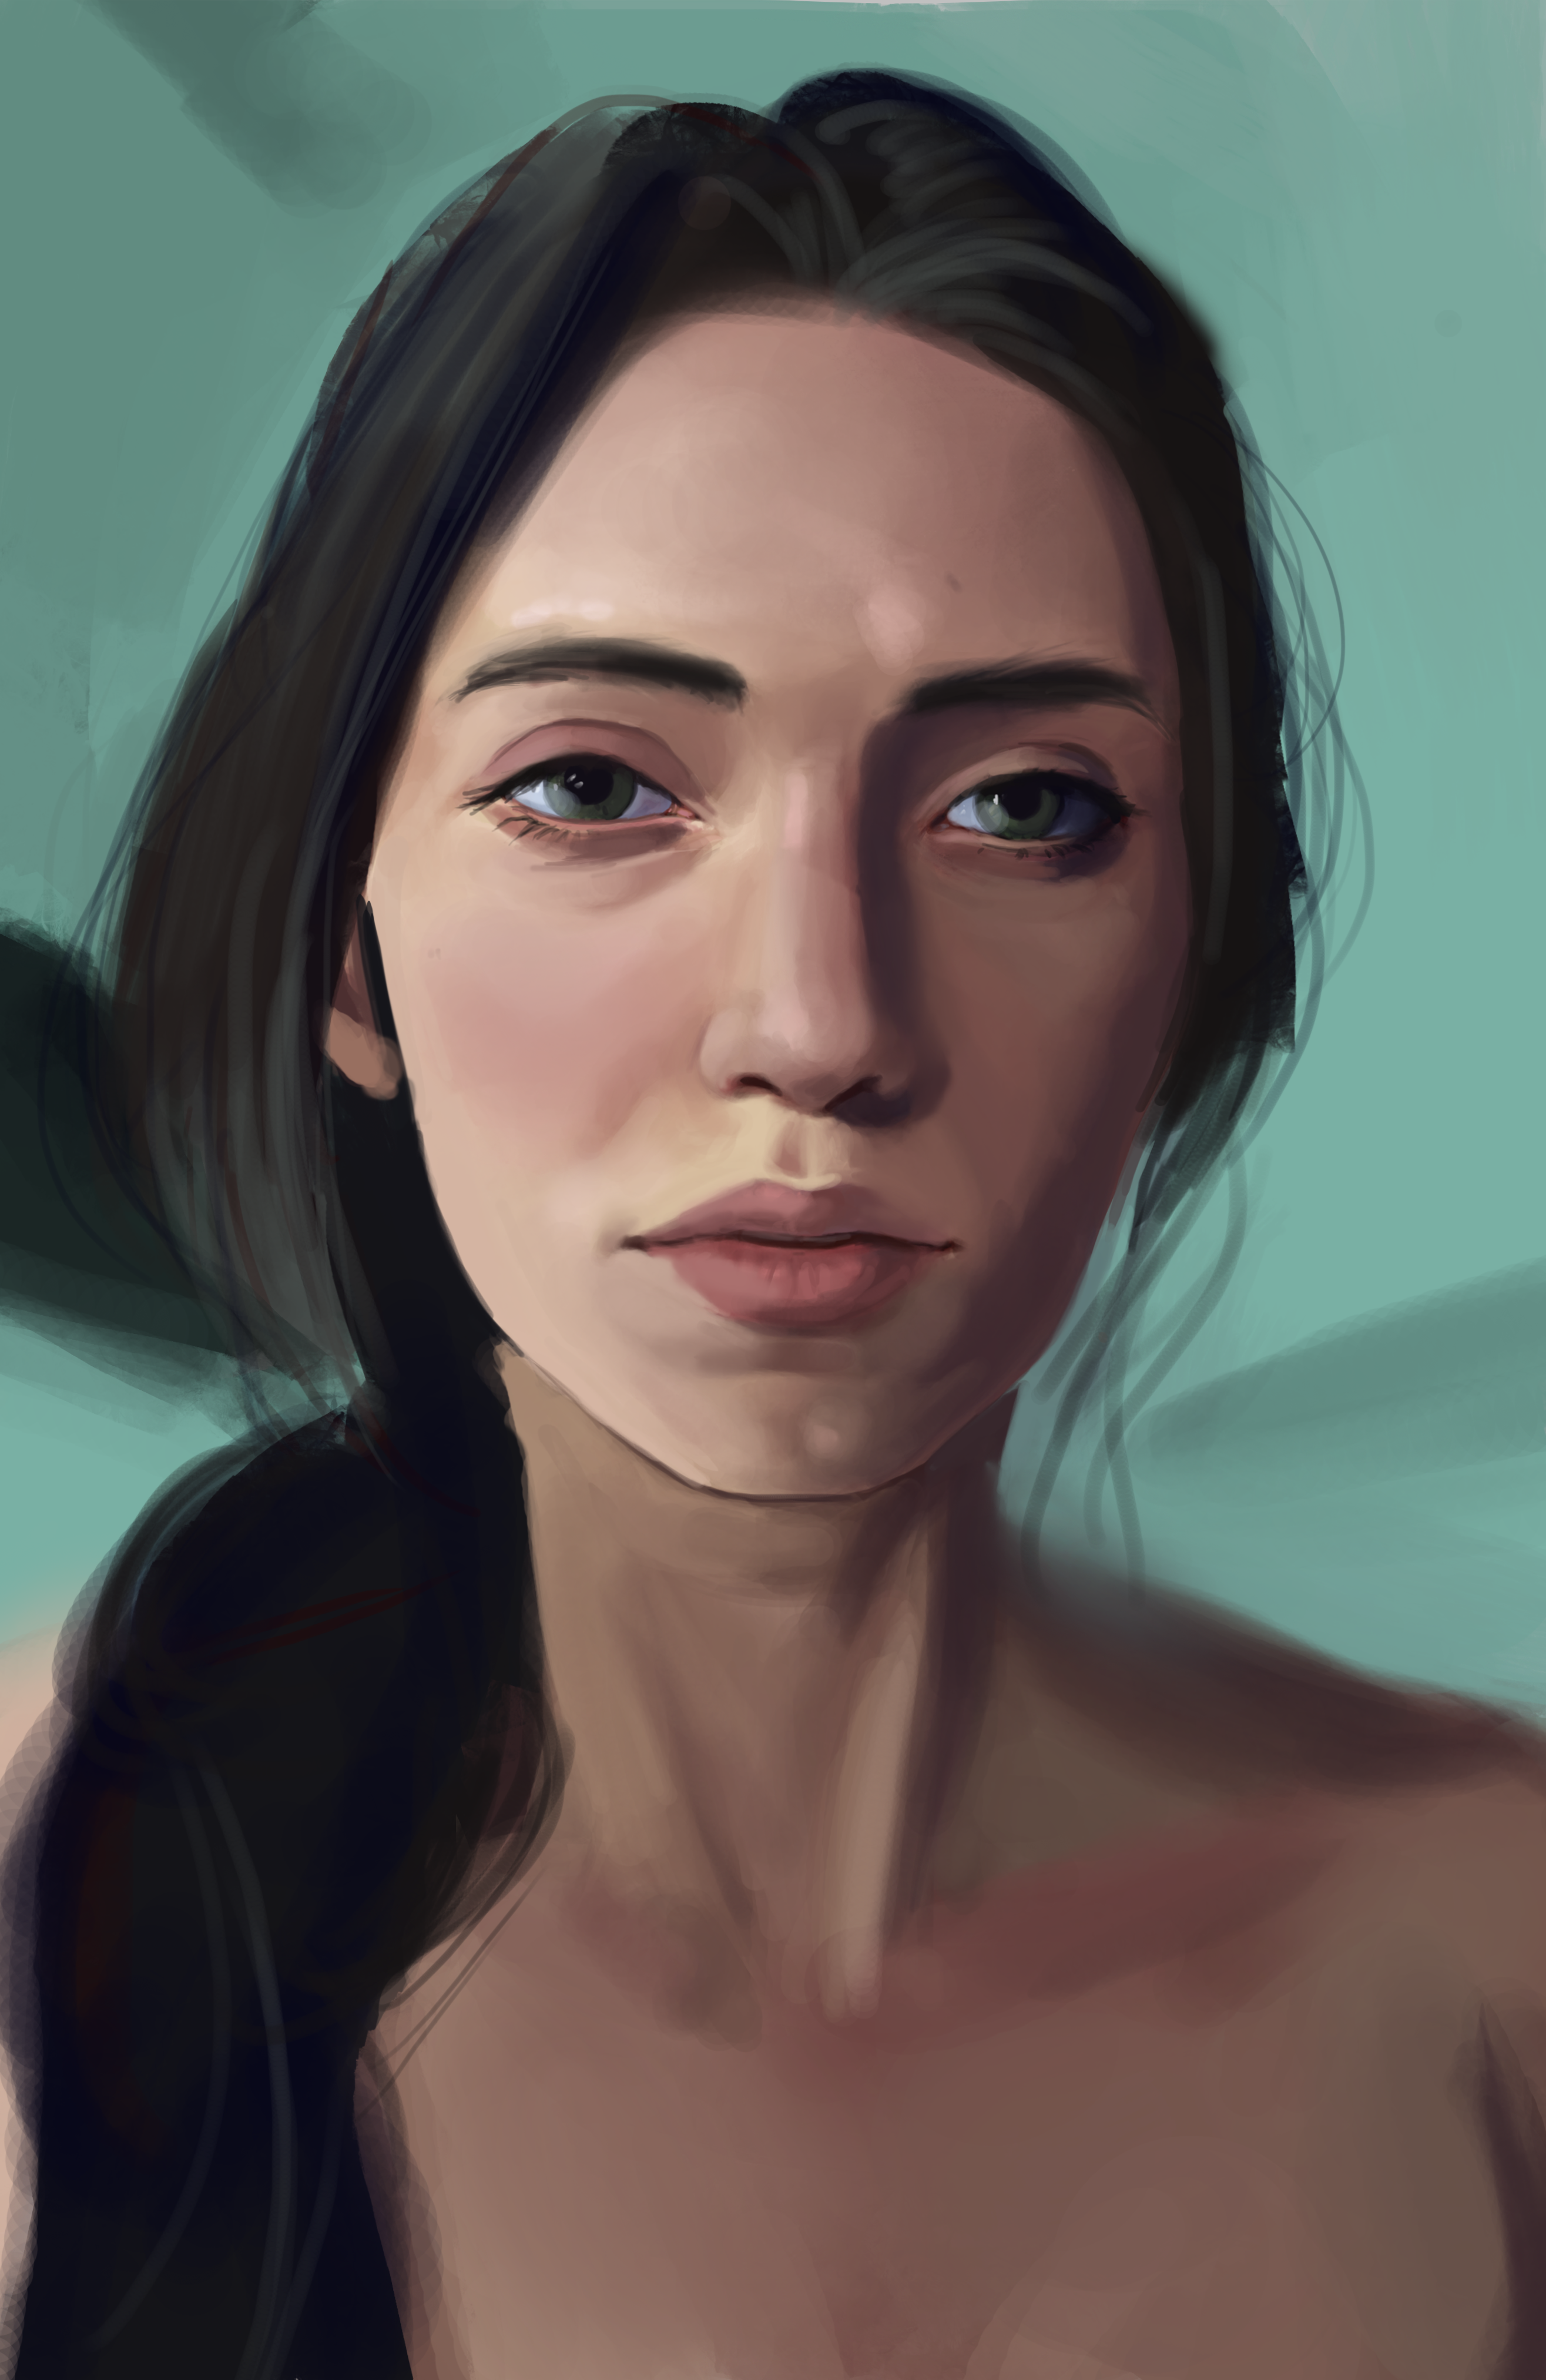 Digital portrait drawing of you